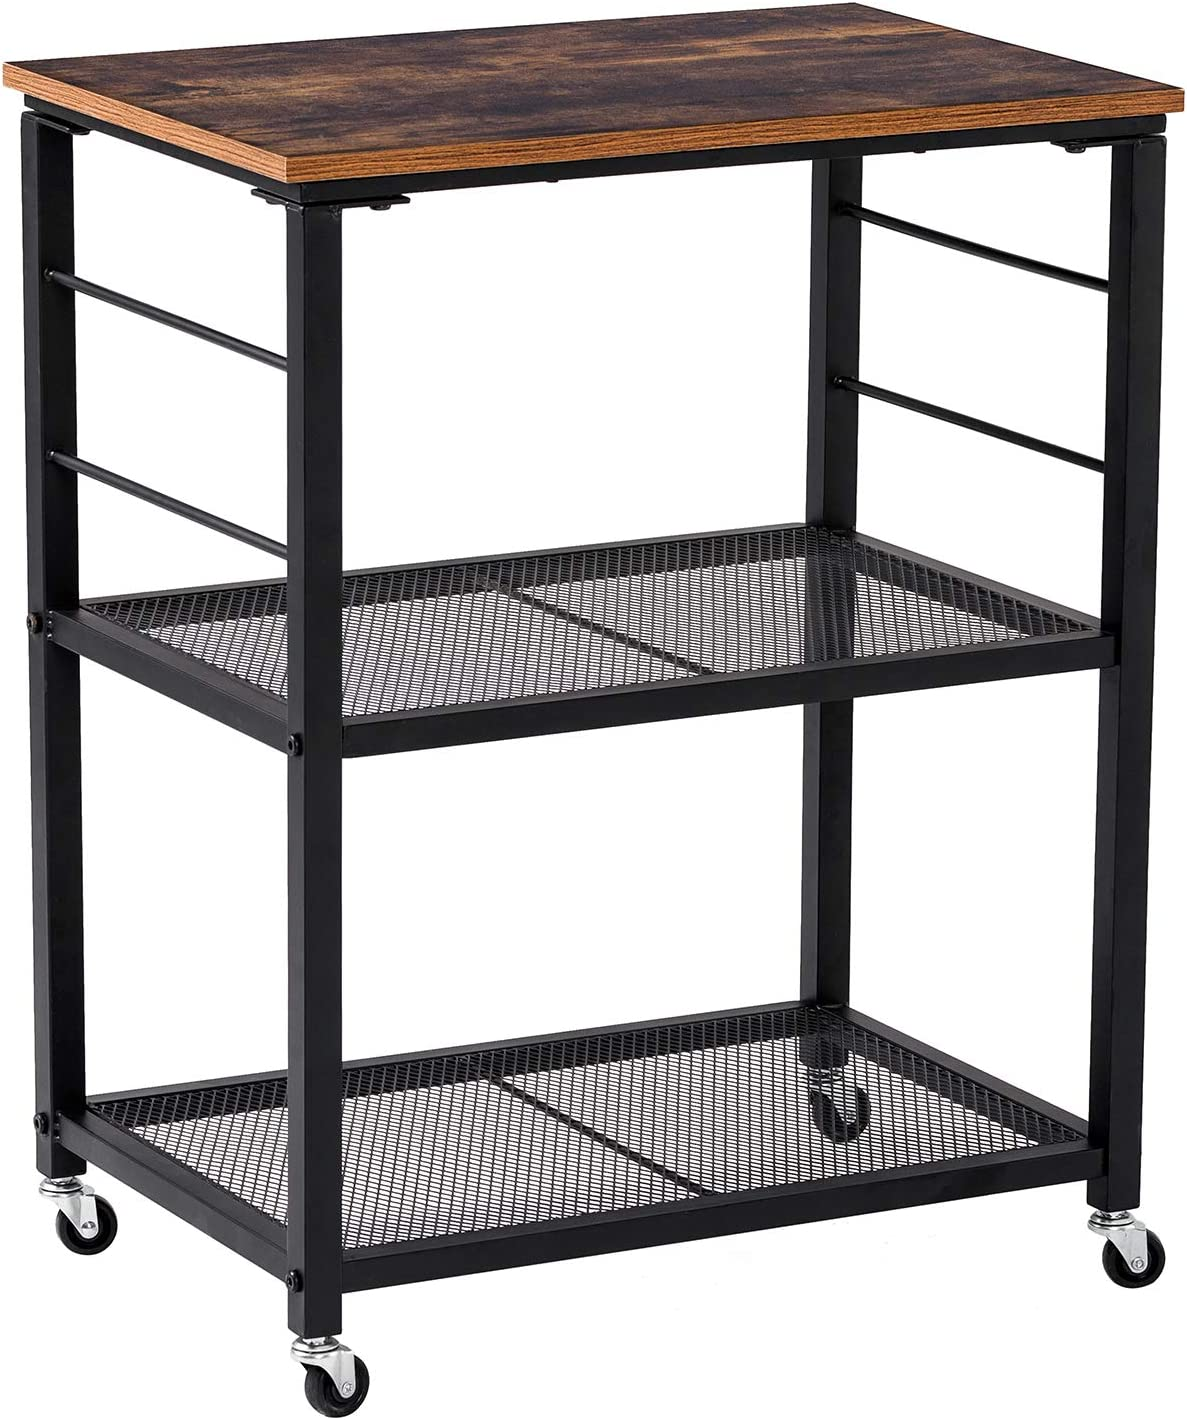 Yasmine Industrial Storage Cart, 3-Tier Kitchen Utility Cart on Wheels with Storage for Living Room, Lockable Craft Cabinet Furniture with Metal Frame